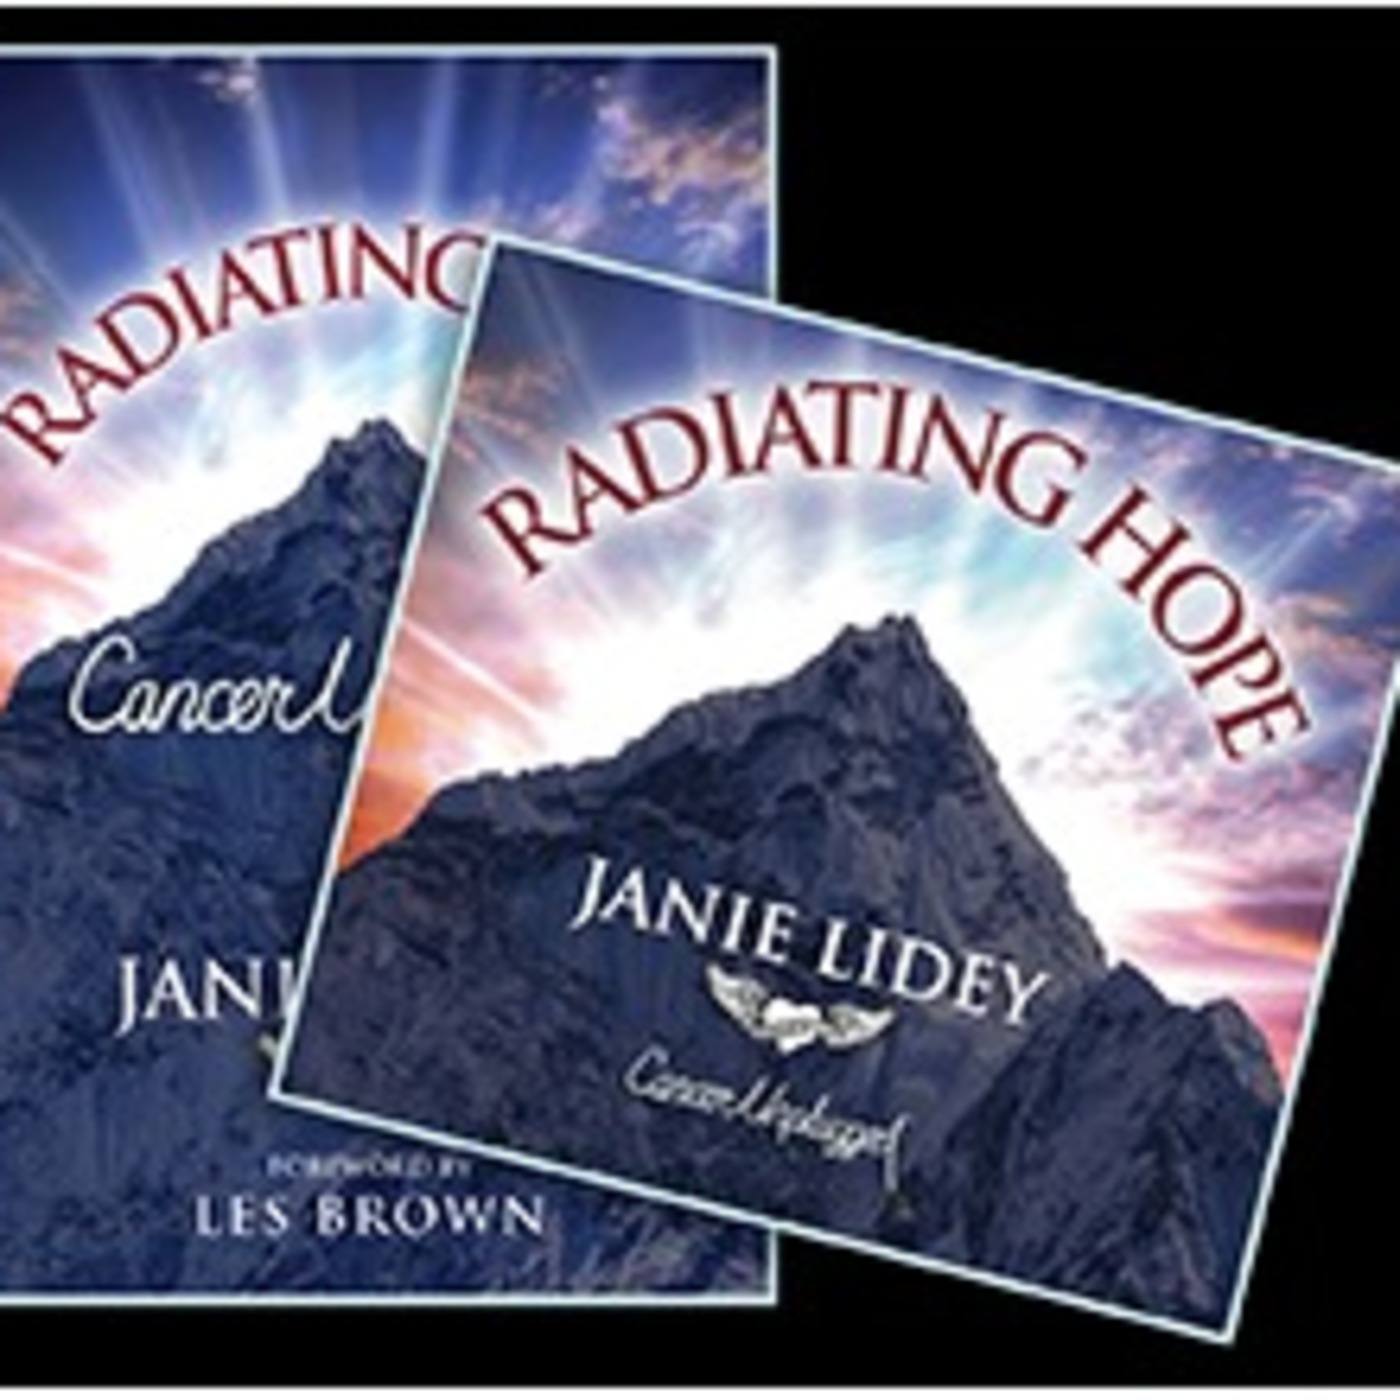 Radiating Hope, by author Janie Lidey